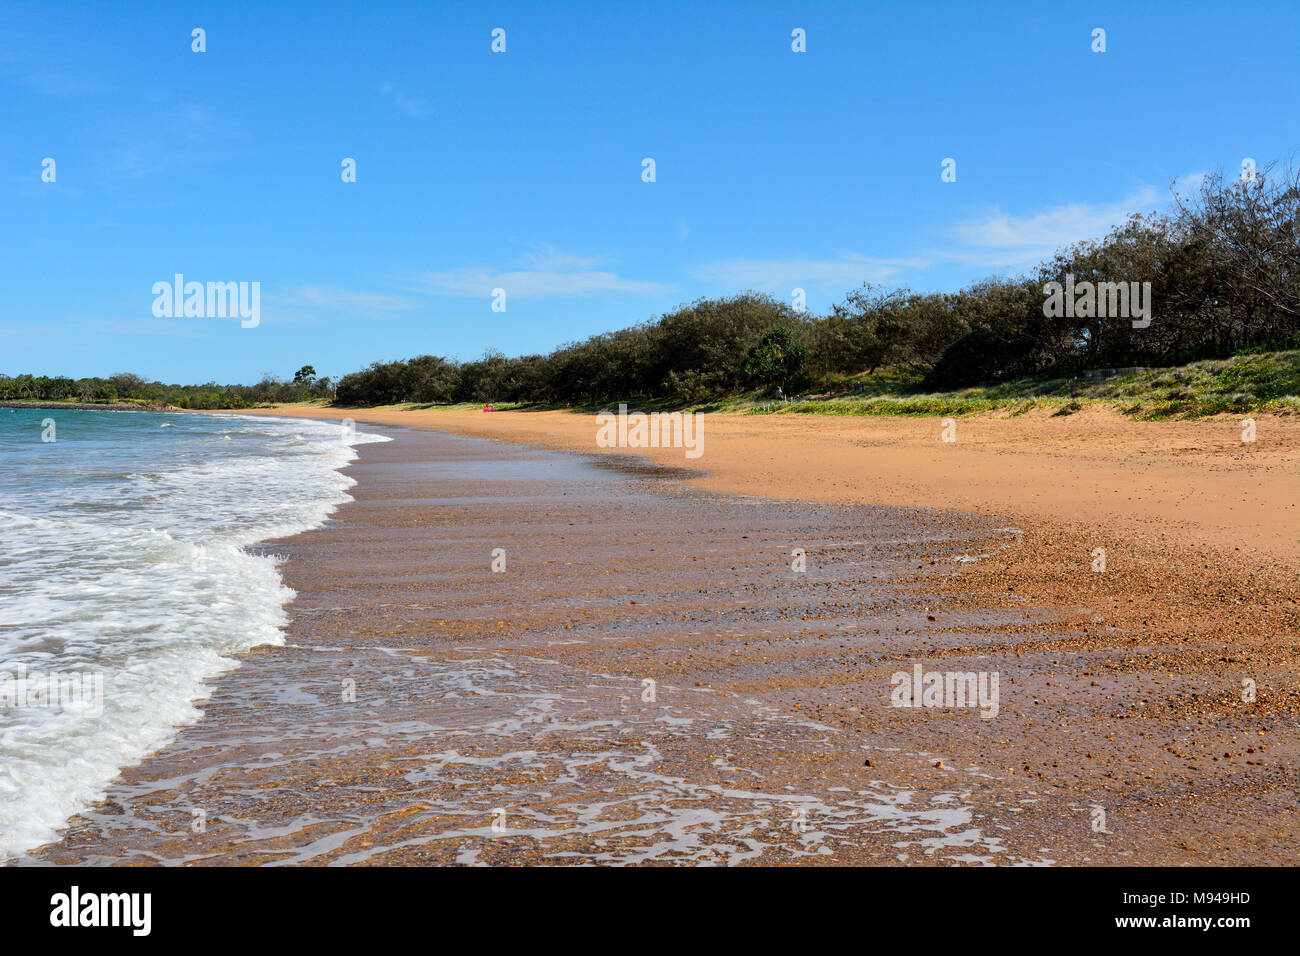 Mon Repos beach near Bundaberg in Queensland, Australia. - Stock Image